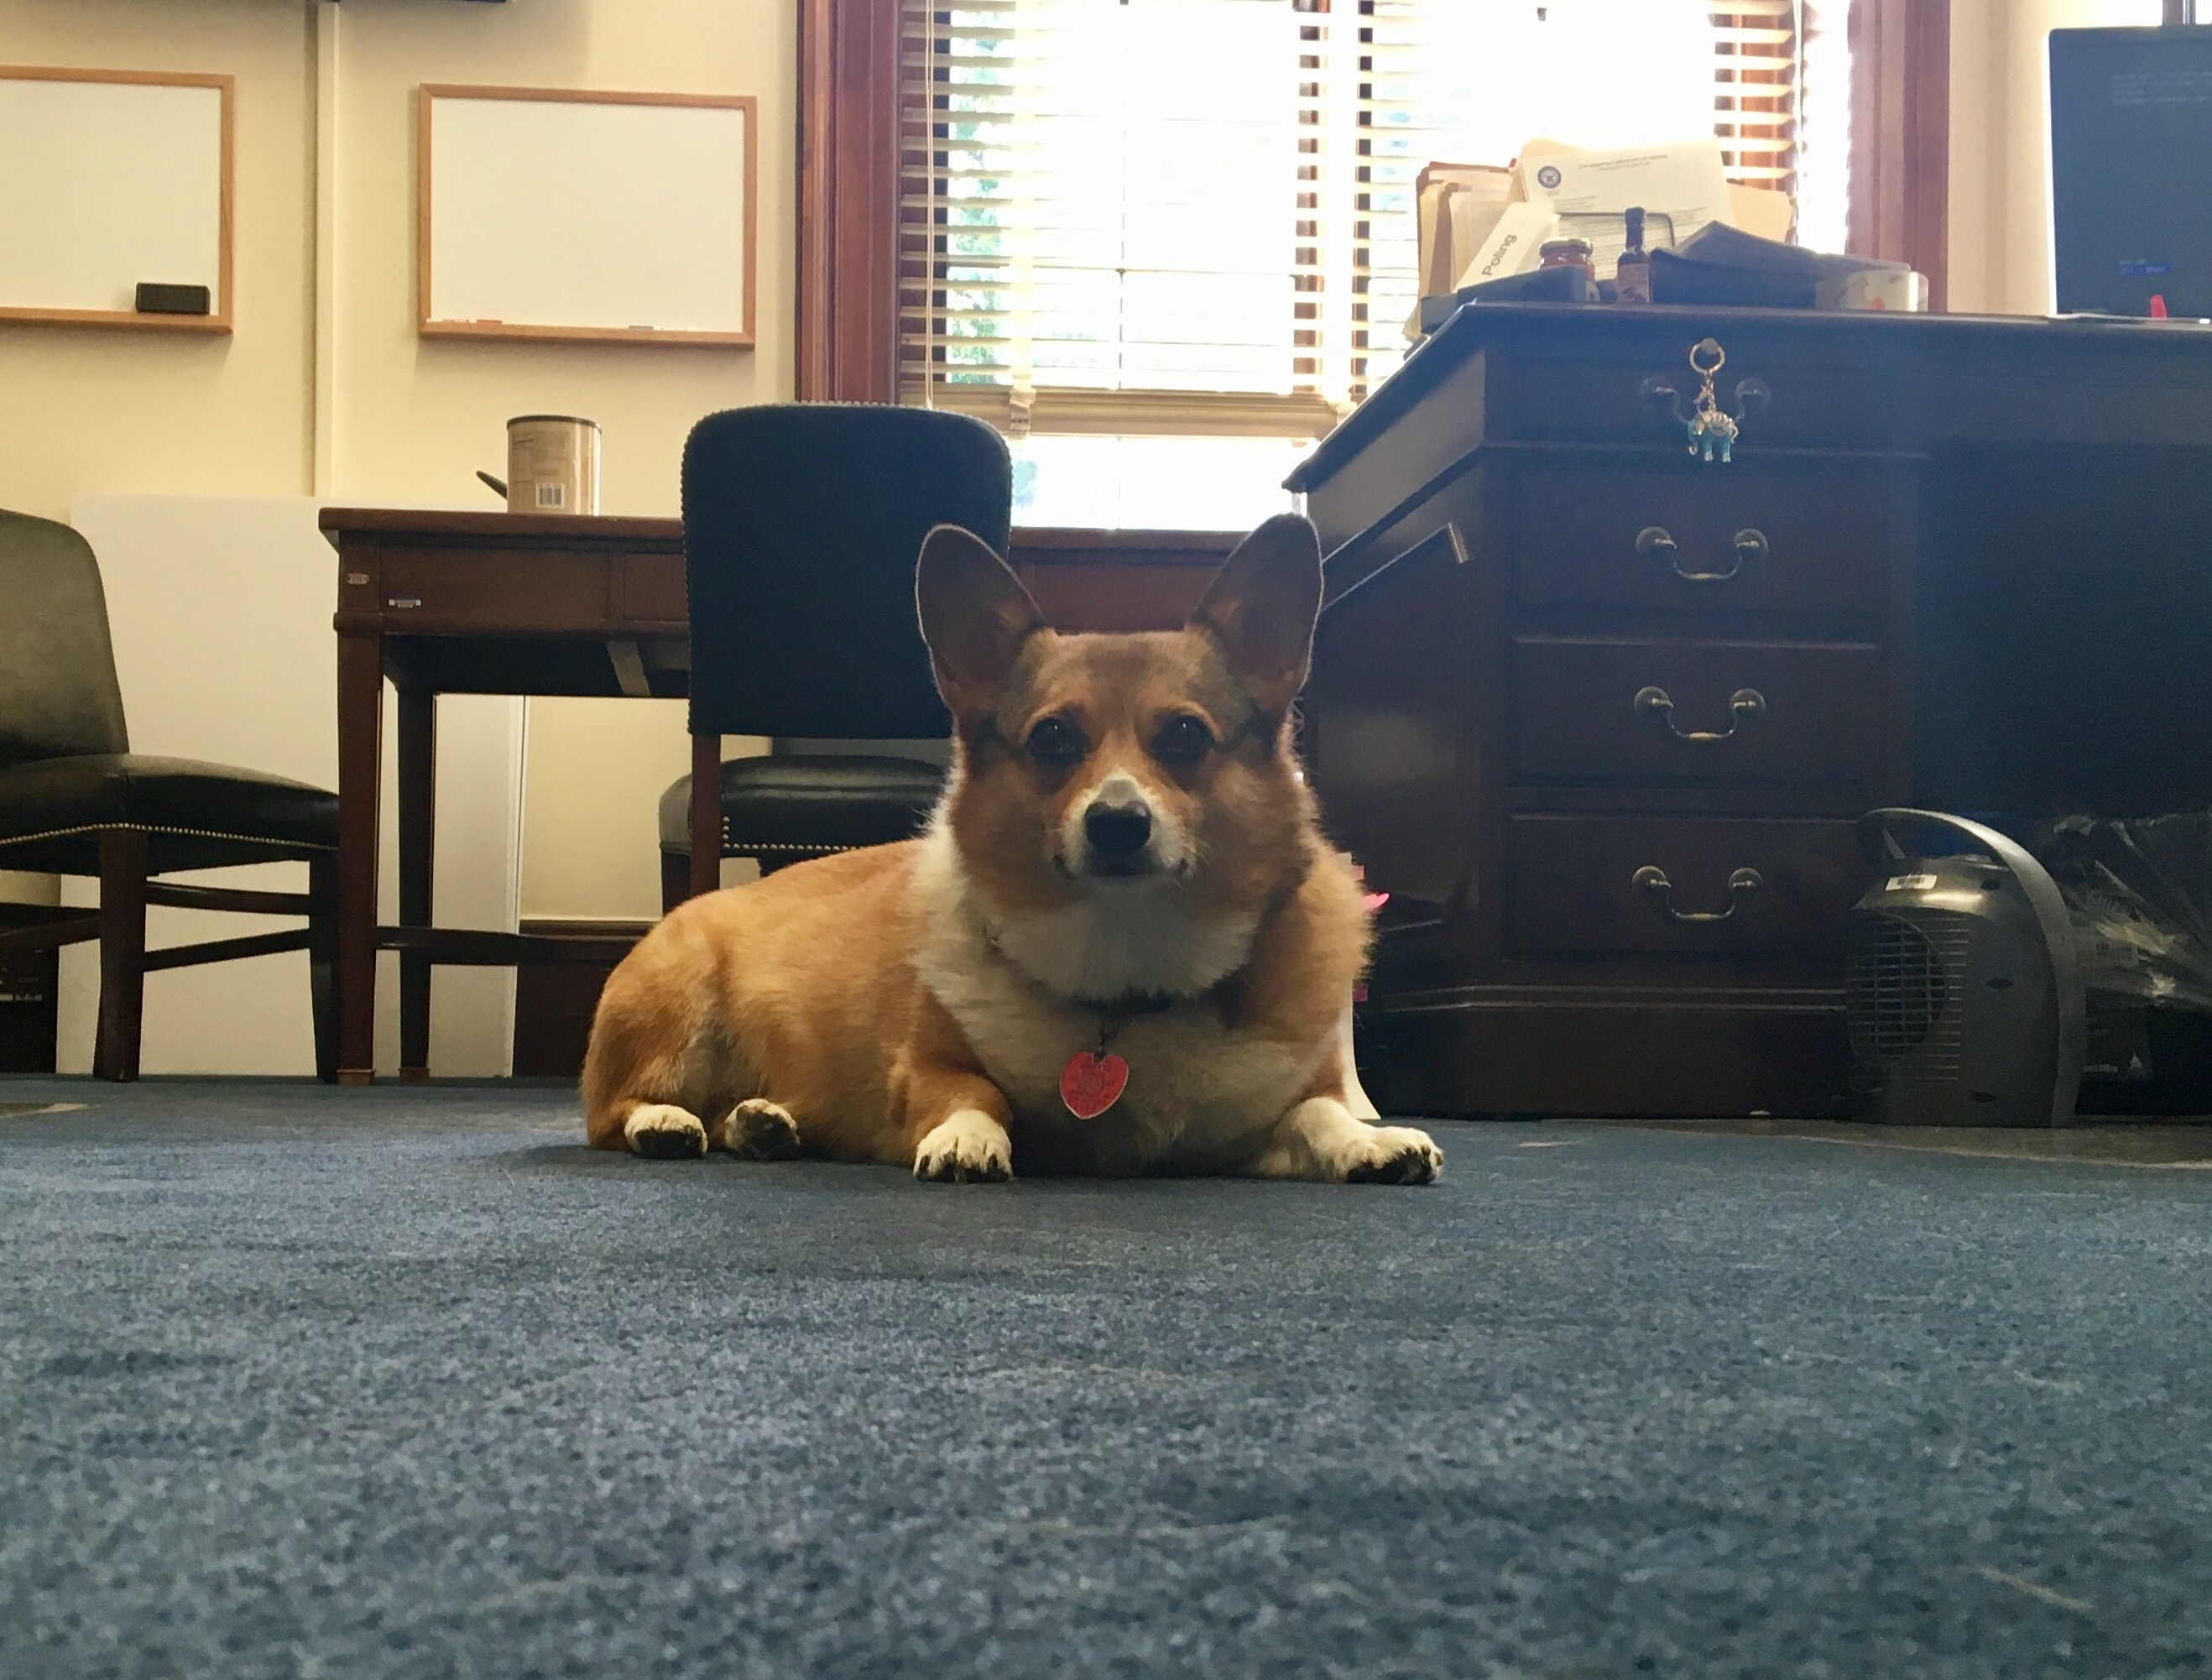 Rigby monitoring for fallen crumbs at lunch. (Courtesy of Perdue's office)